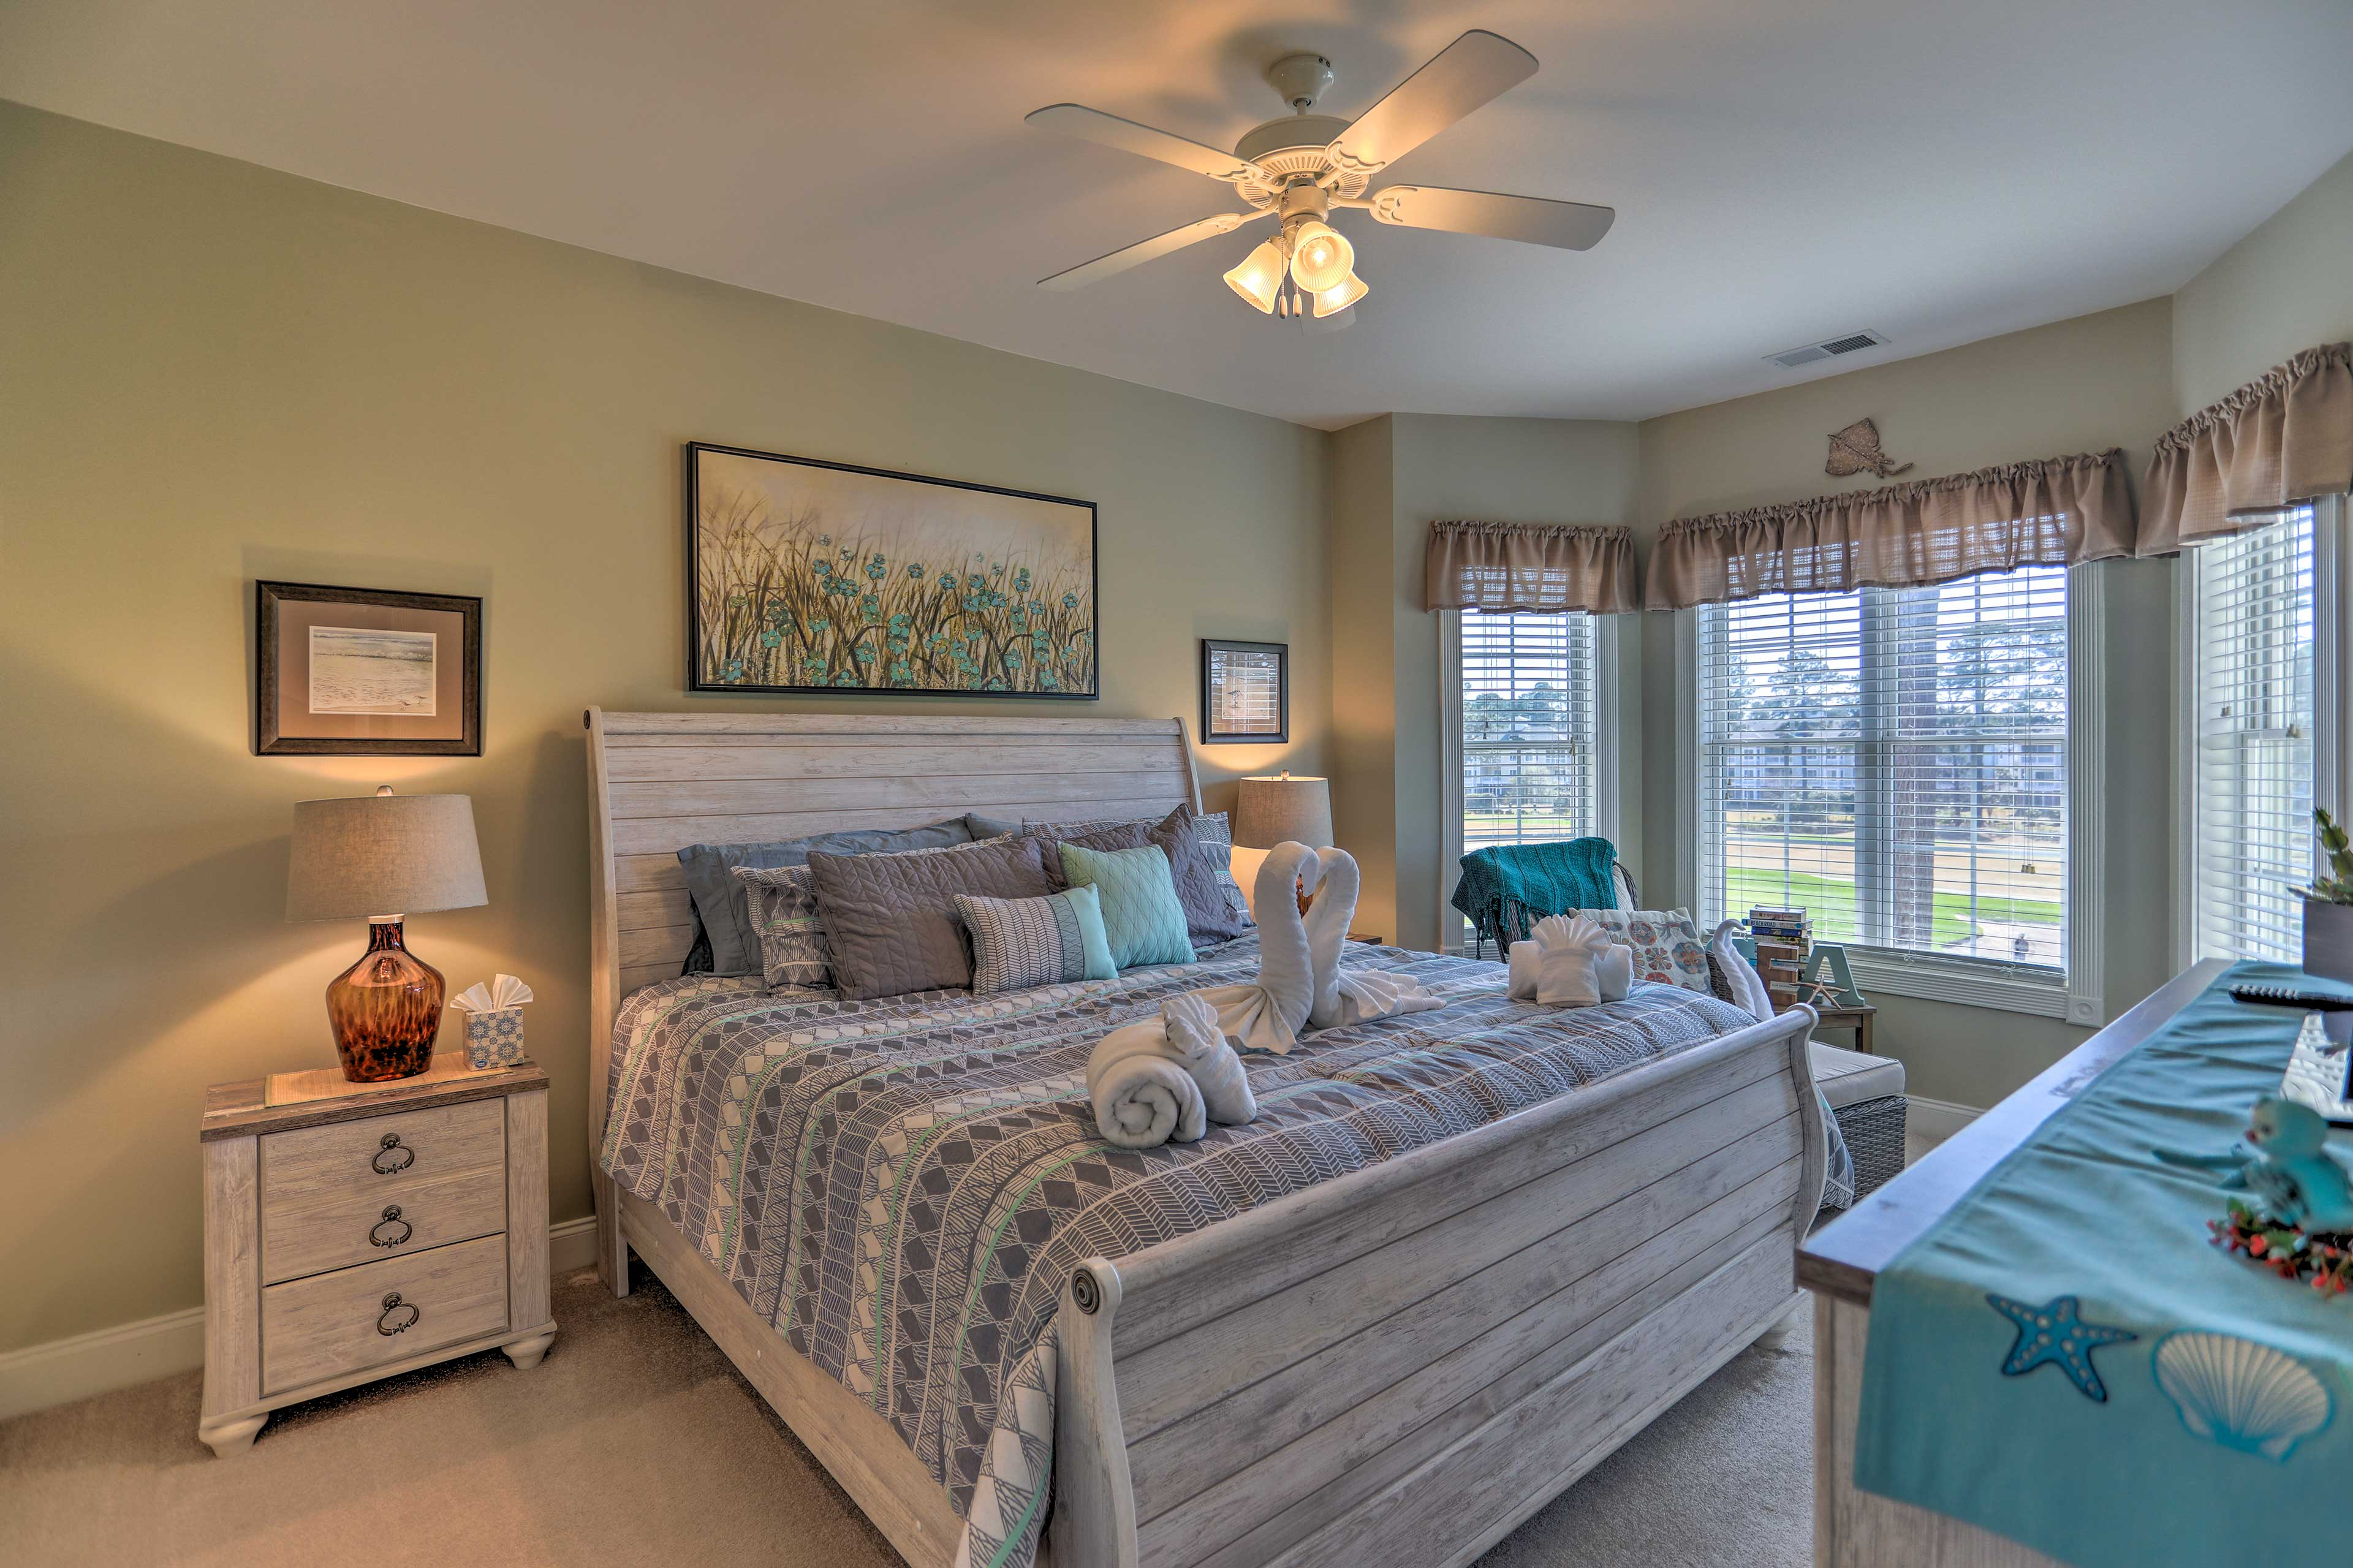 Sleep will come easy in the open and airy master suite.